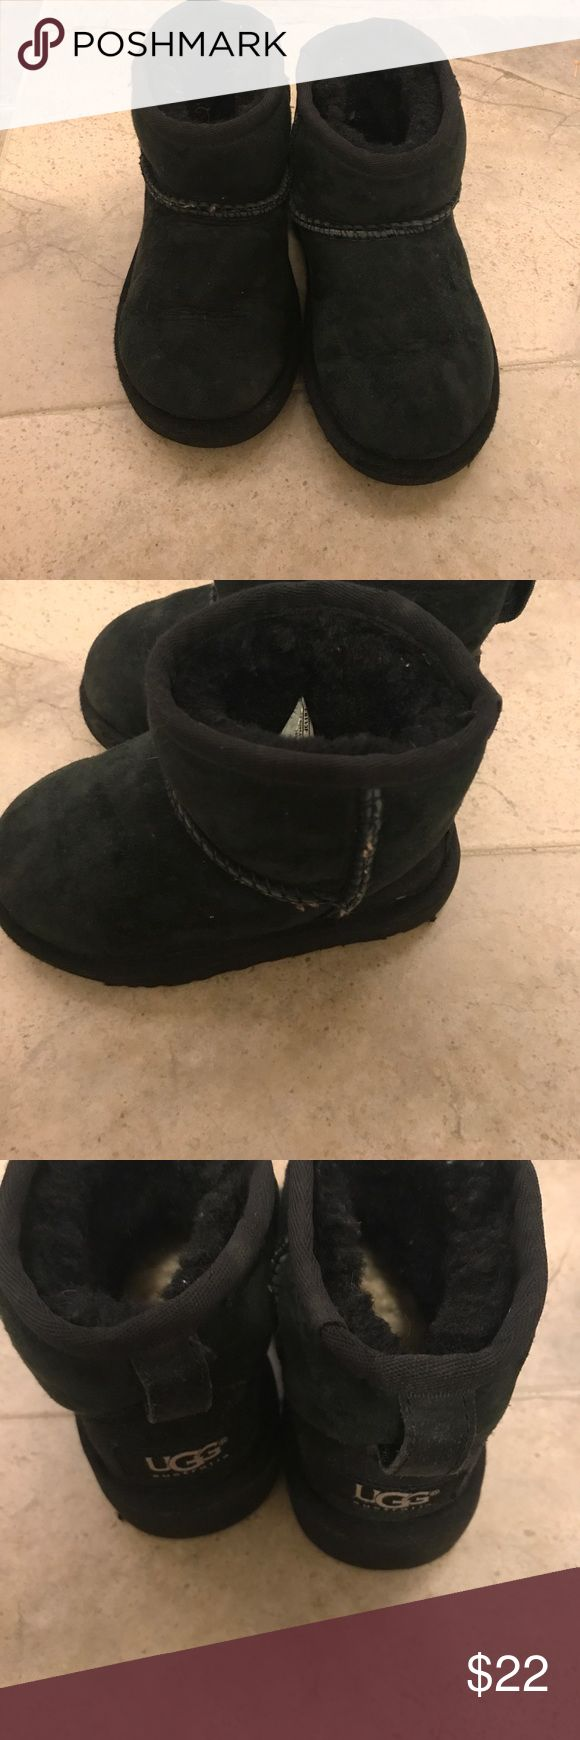 EUC children's Ugg boots Adorable Ugg boots for your child! UGG Shoes Boots